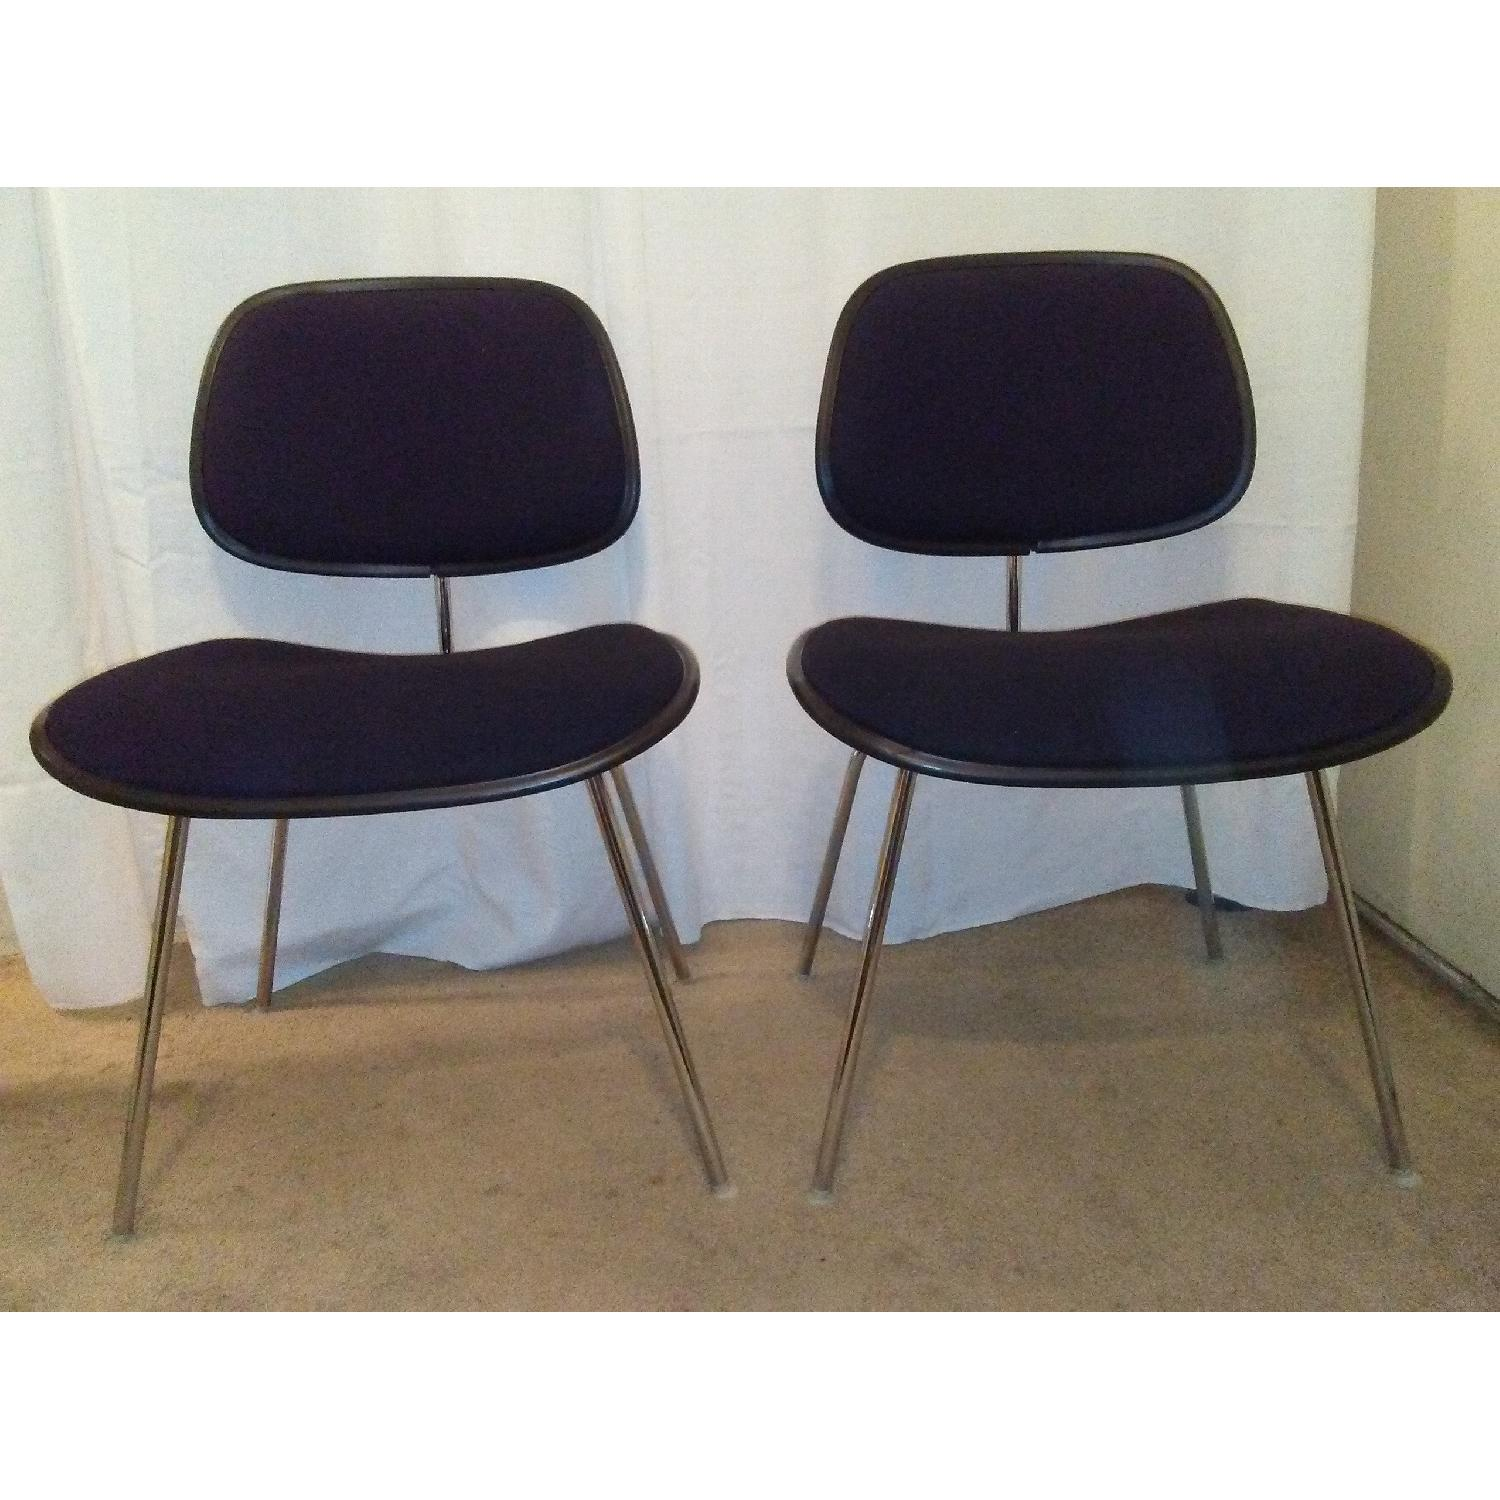 Herman Miller c.1992 Charles Eames Dining/Accent Chairs - image-5